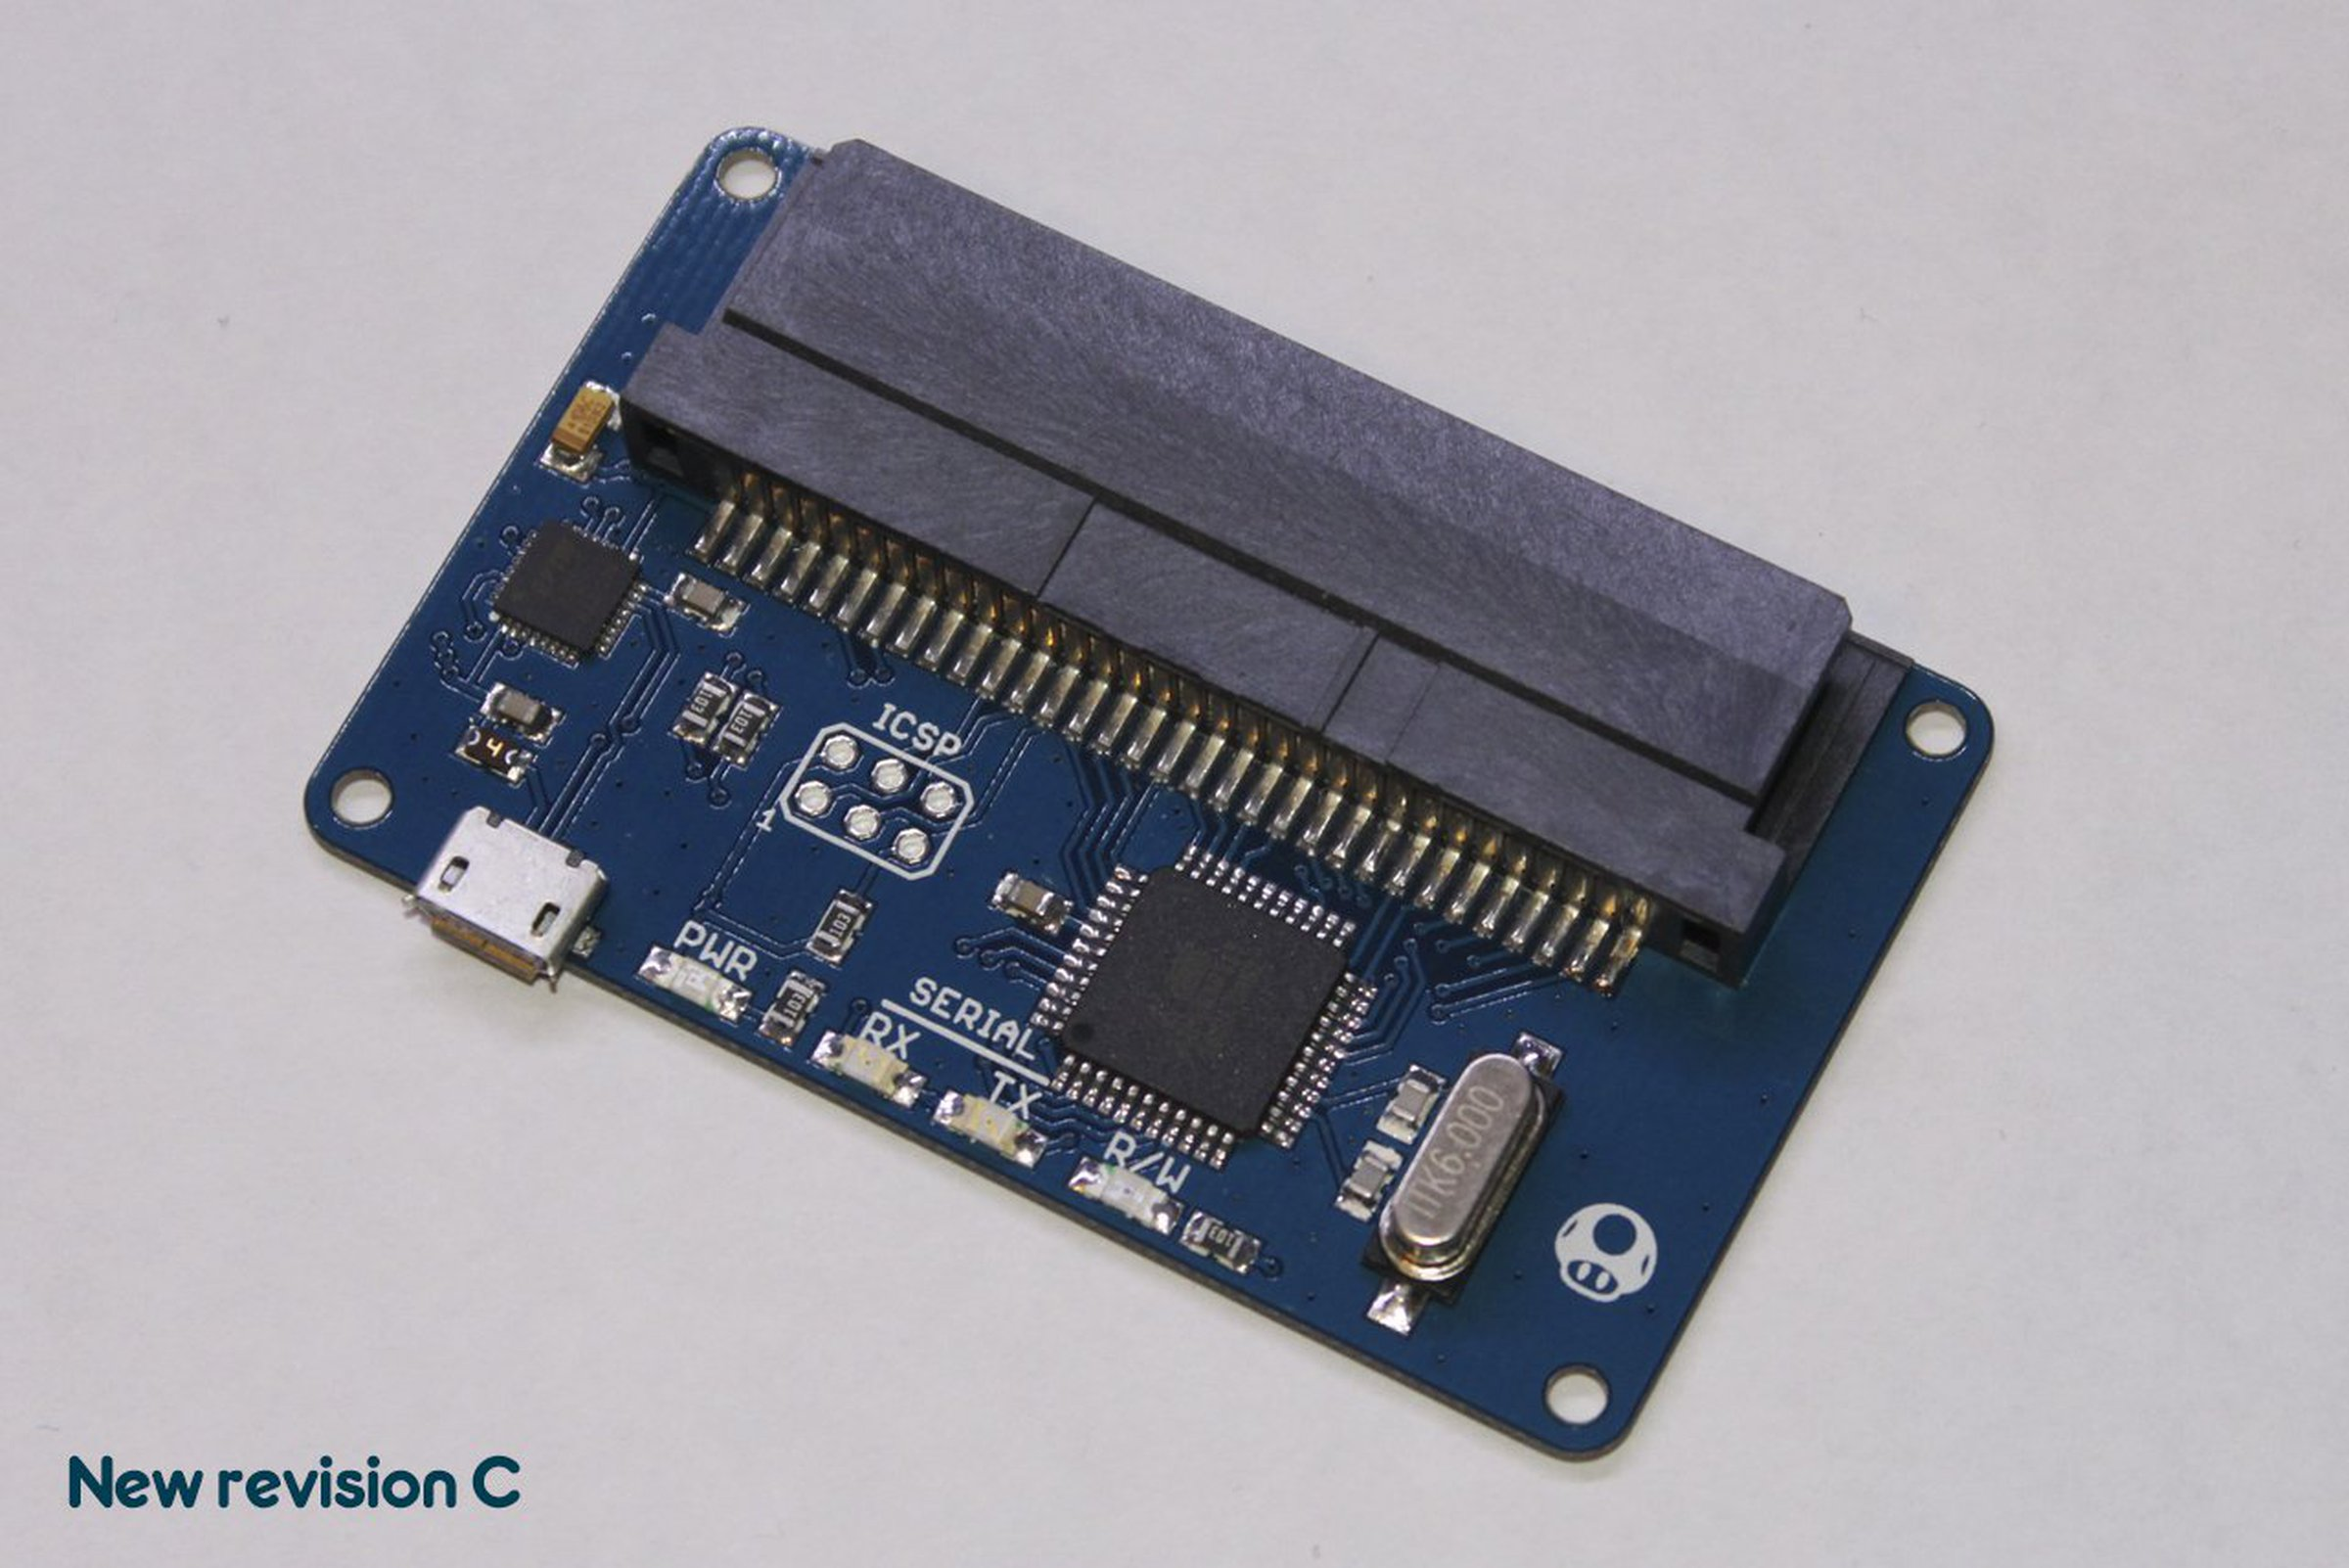 Cart flasher for gameboy from j rodrigo on tindie